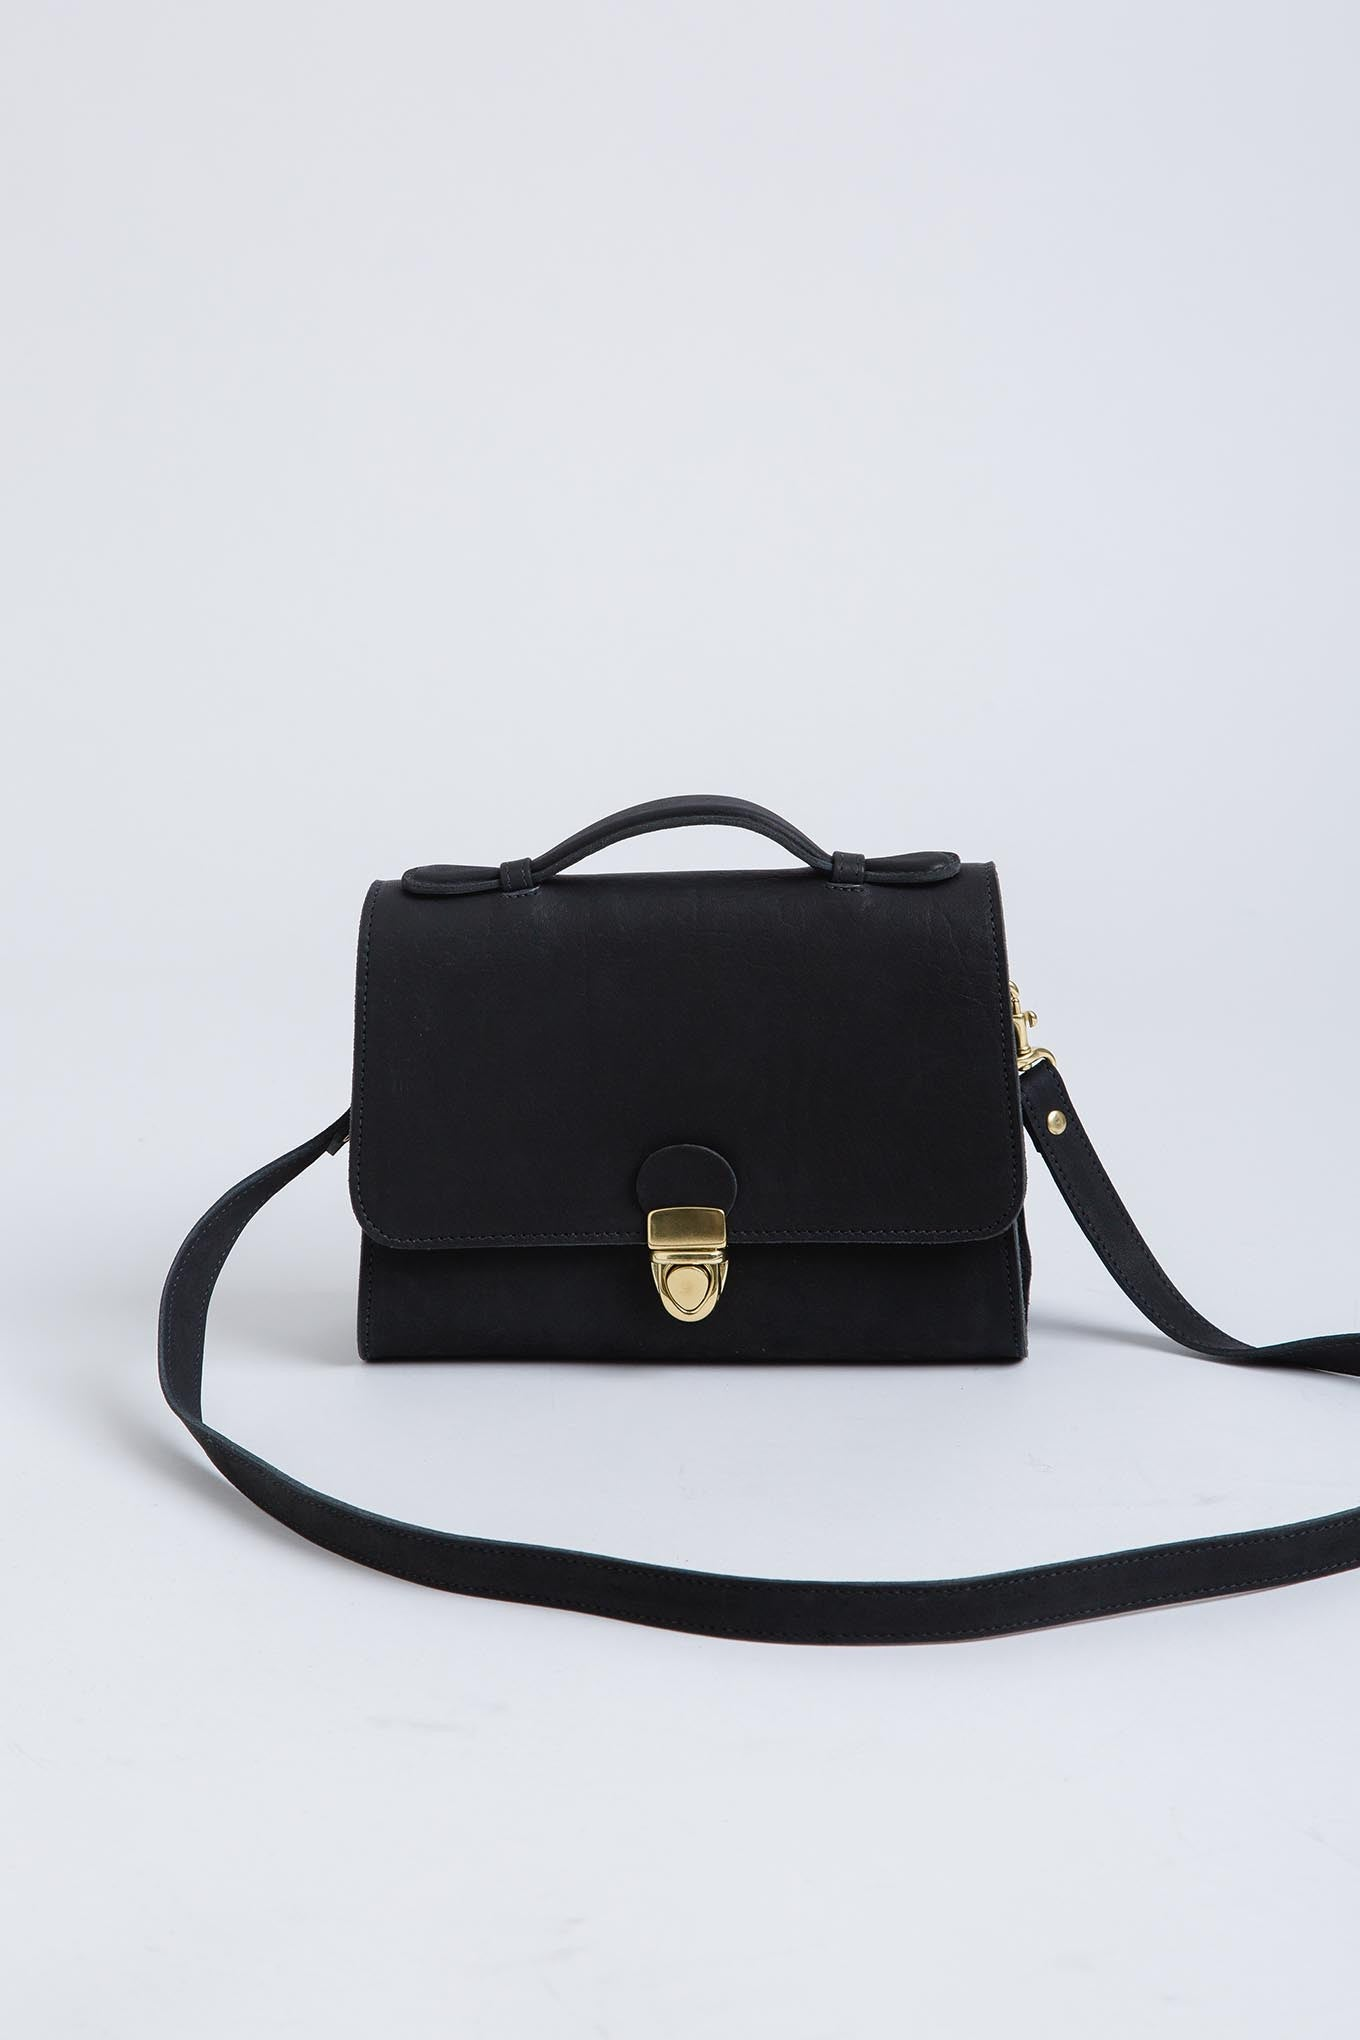 Marlow Goods / Dinan Bag